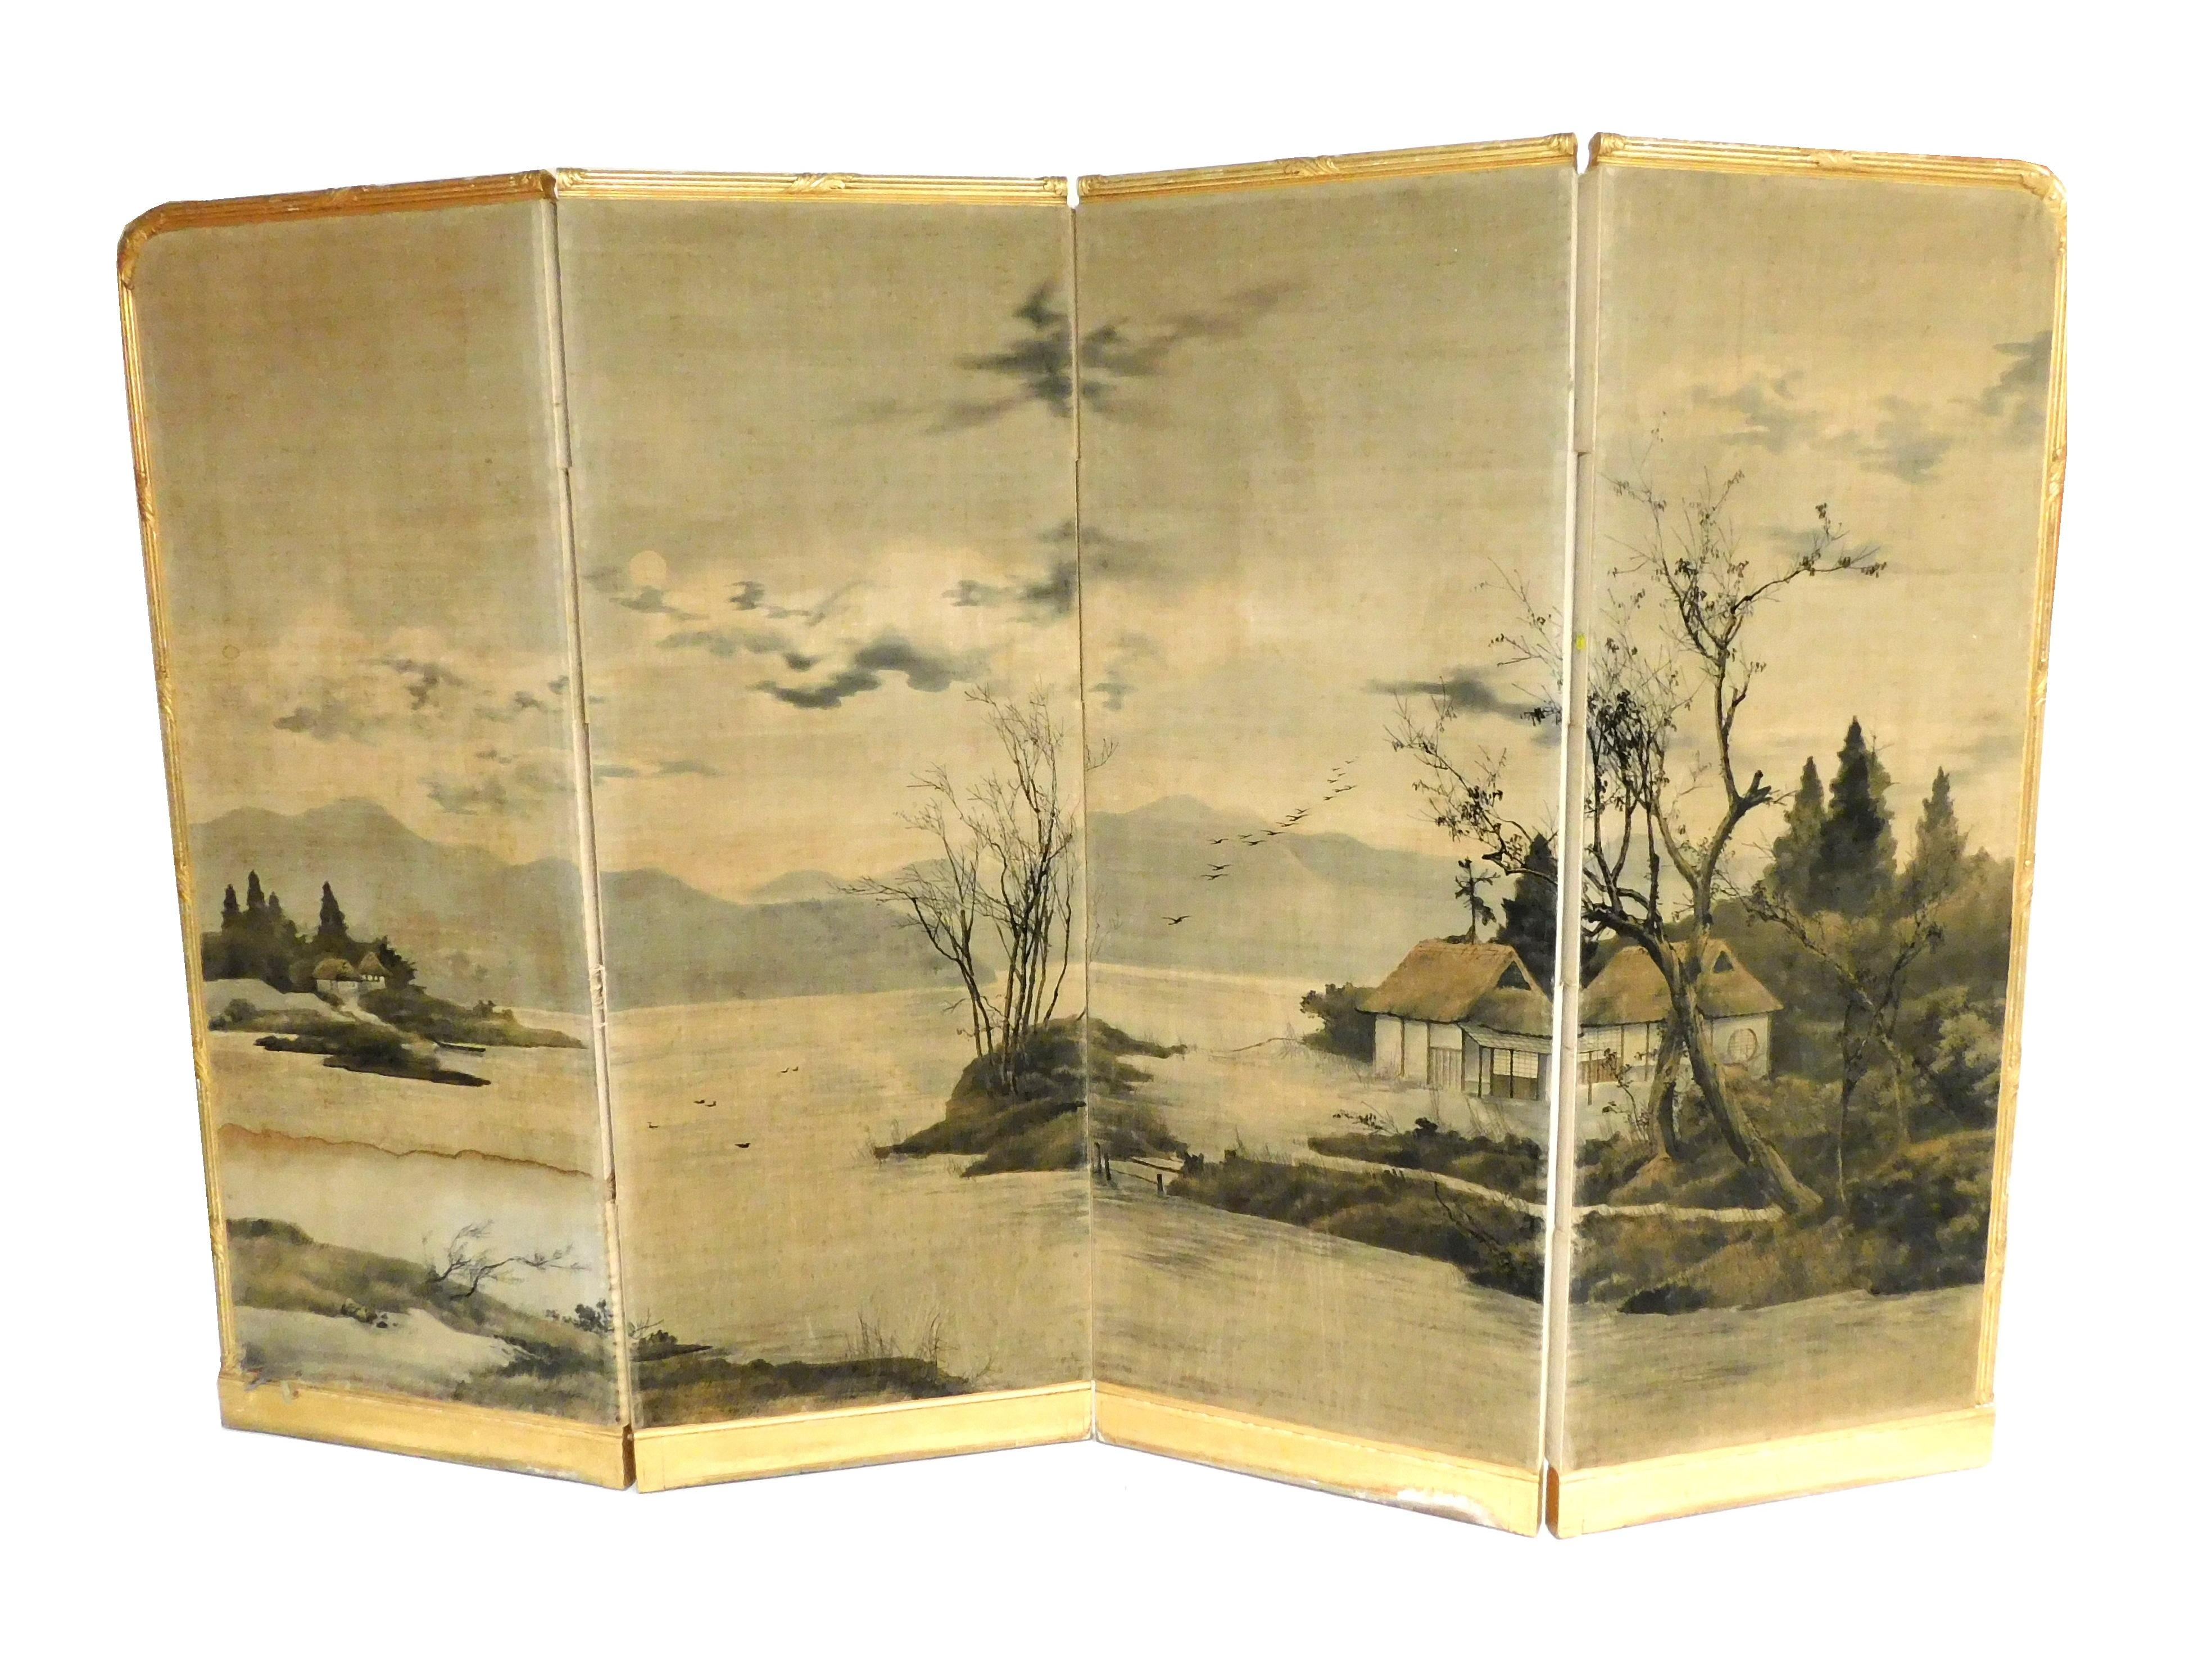 Four-panel floor screen with gilded carved frame, panels are handpainted on fabric, the scene depicts landscape on fabric with a hou...